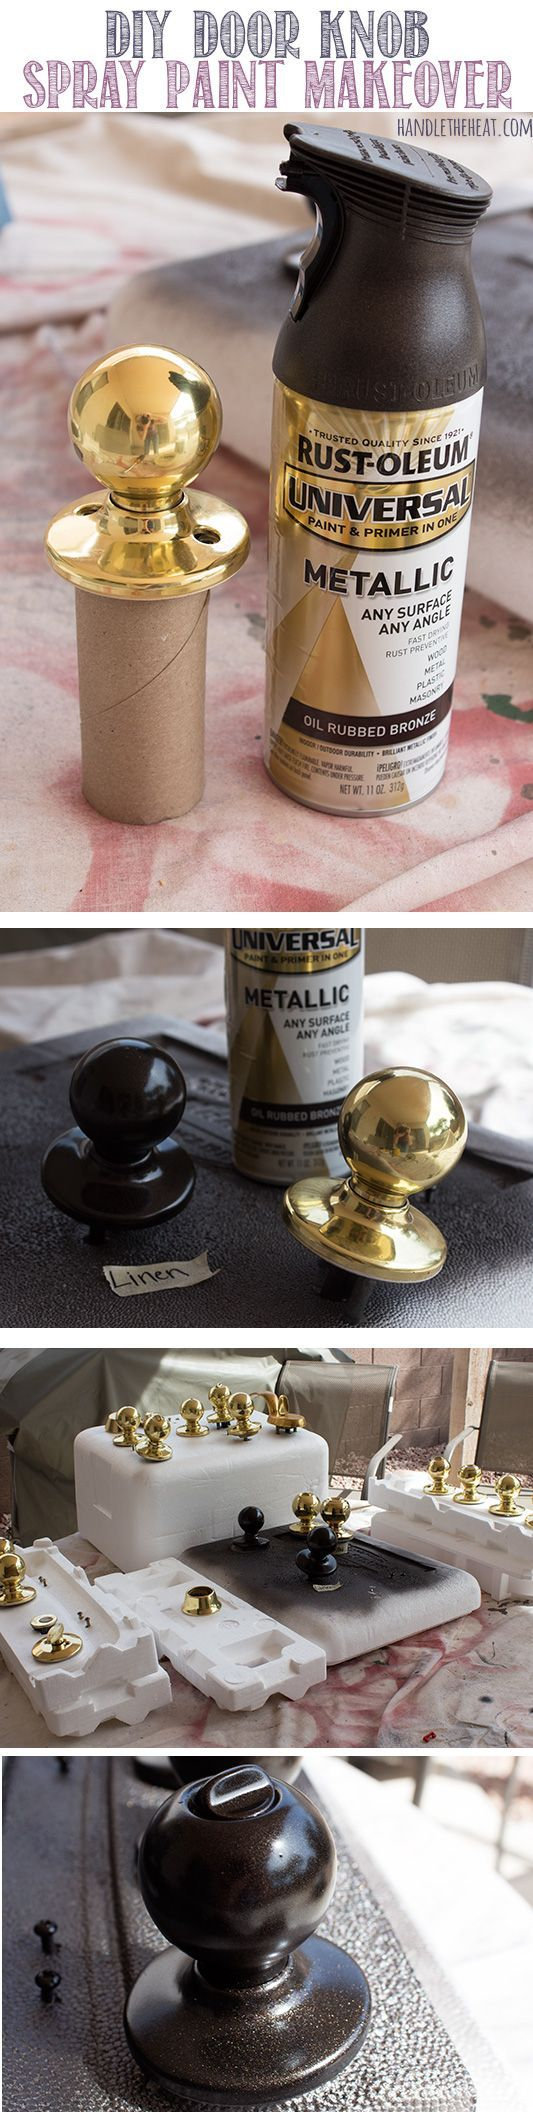 Don't buy new (and expensive) door hardware - paint it! DIY Door Knob Spray Paint Makeover